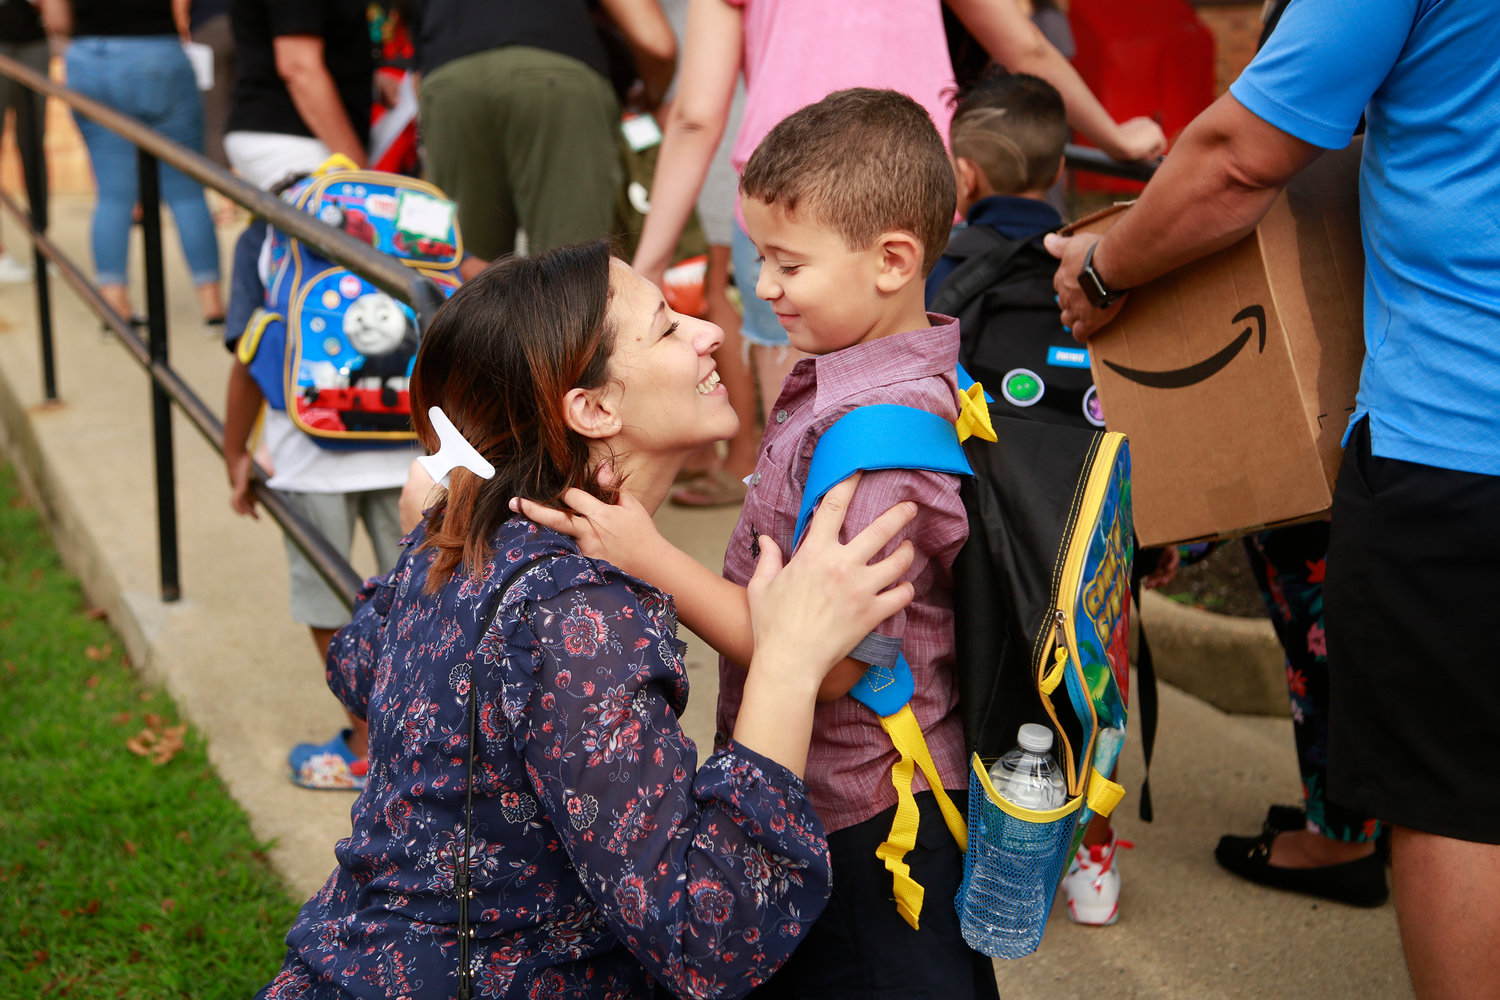 Sabrina Meftali shared a moment with her son, Aydin Remouche, as he started his first day of kindergarten.